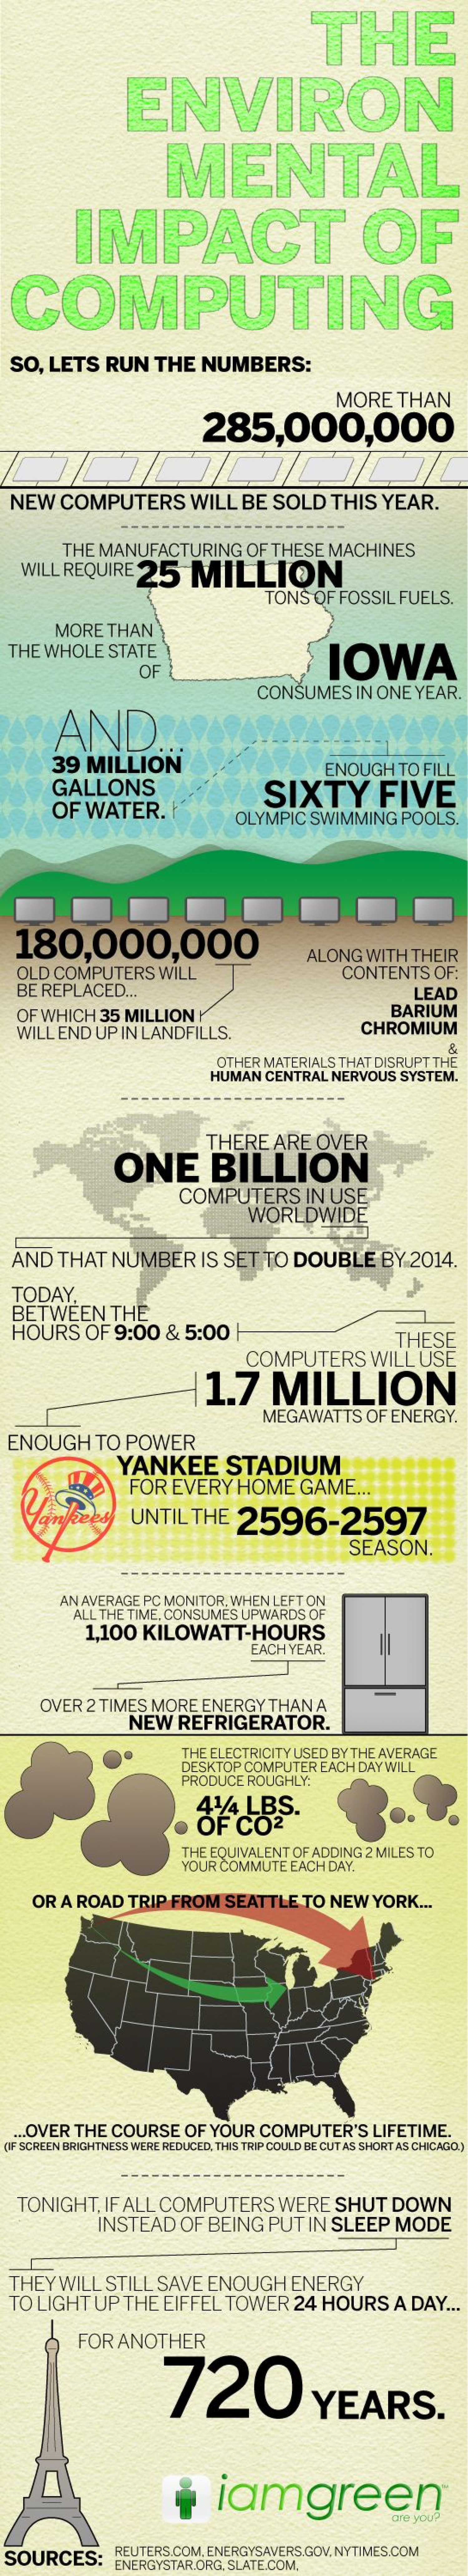 The Environmental Impact Of Computing Infographic